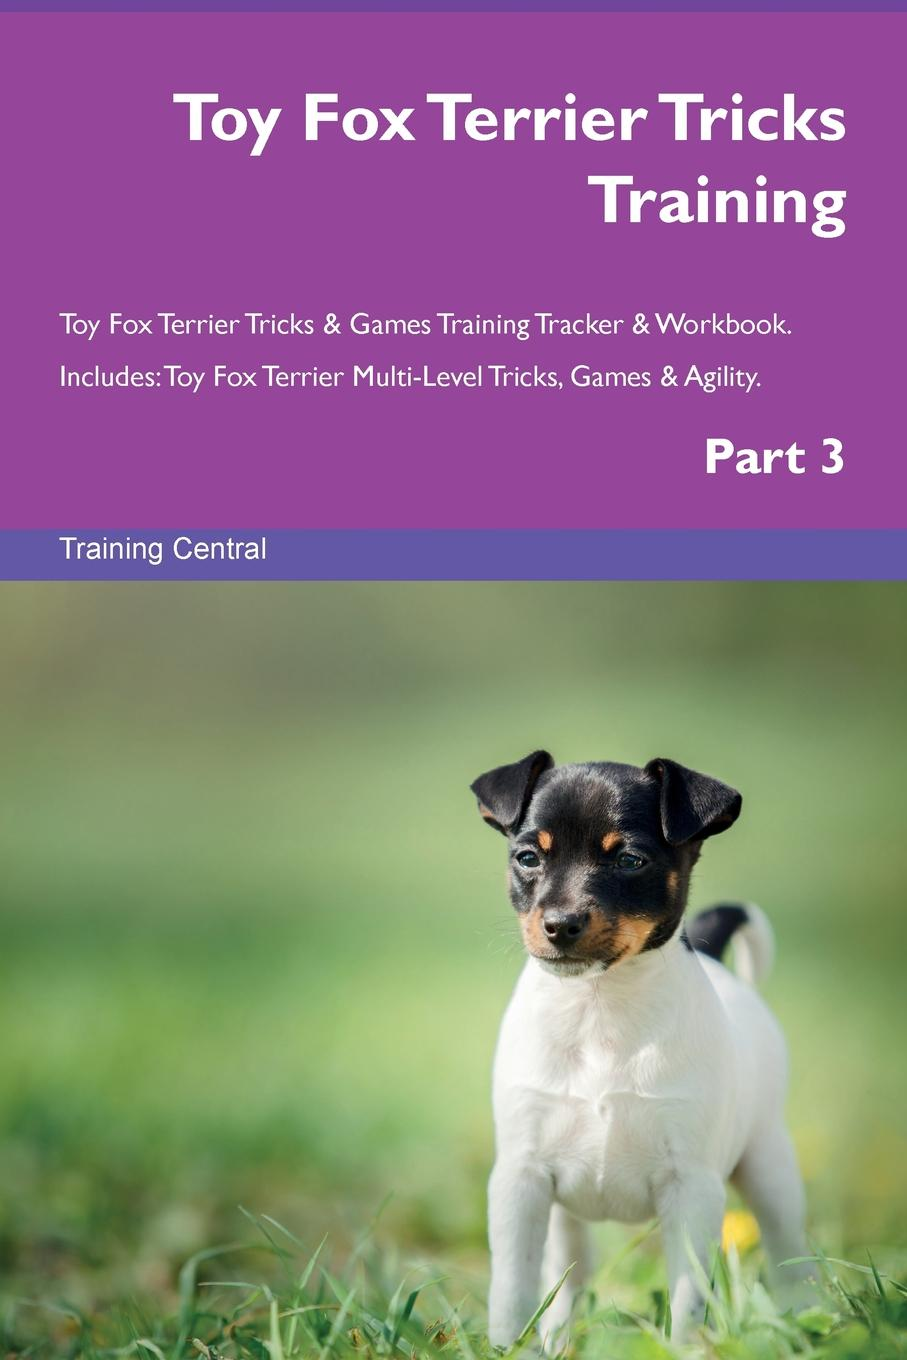 Training Central Toy Fox Terrier Tricks Training Toy Fox Terrier Tricks . Games Training Tracker . Workbook. Includes. Toy Fox Terrier Multi-Level Tricks, Games . Agility. Part 3 fox s book of martyrs